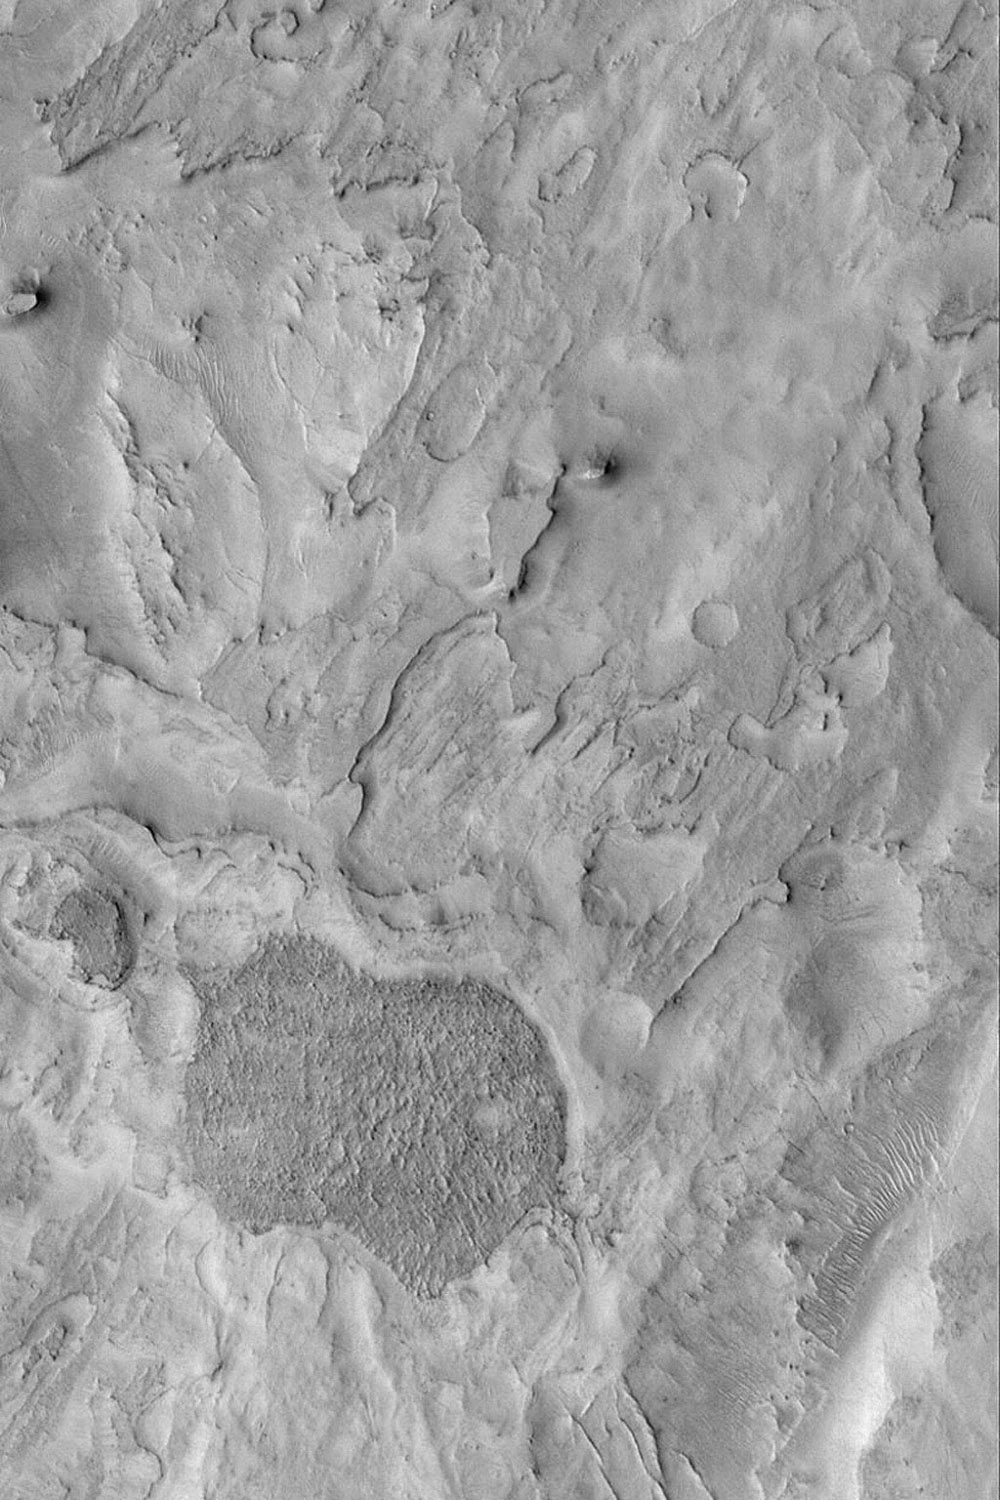 NASA's Mars Global Surveyor shows some of the eroded terrain in northeast Arabia Terra near Huo Hsing Vallis on Mars. The terrain is layered, and these layers have been eroded.